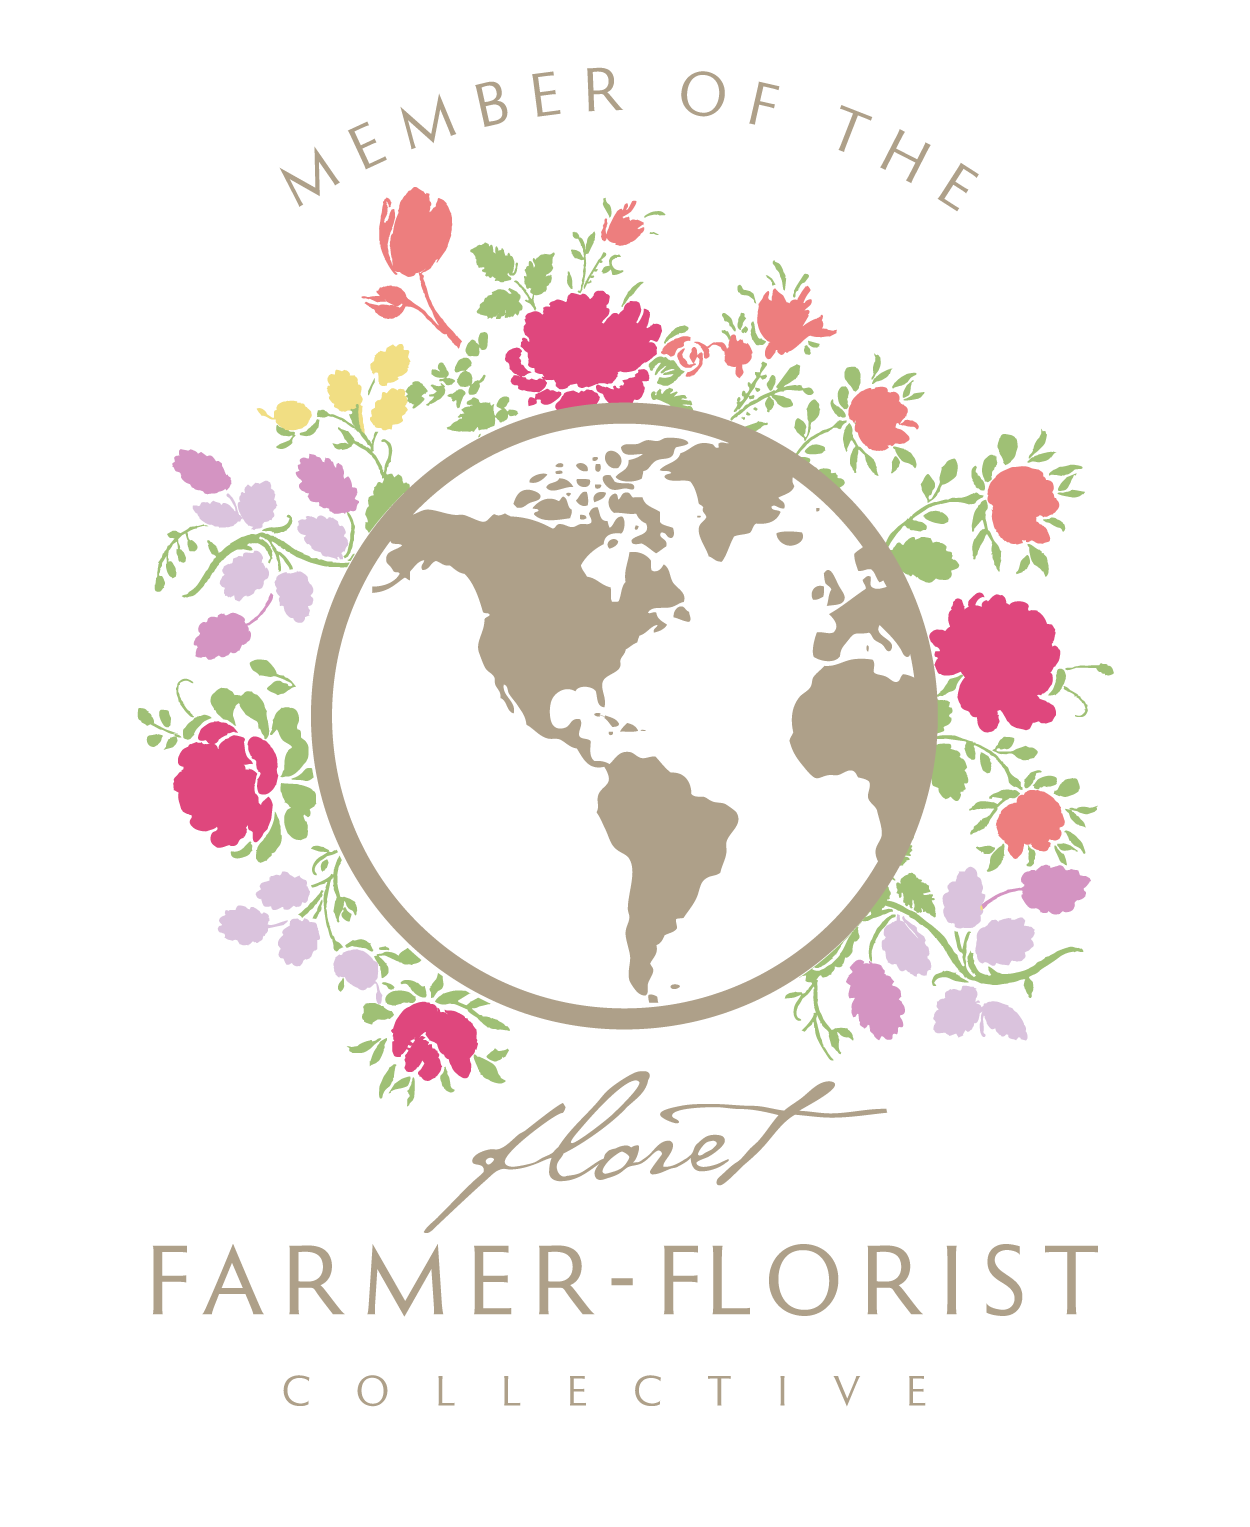 floret collective blossom and branch colorado flower farmer florist